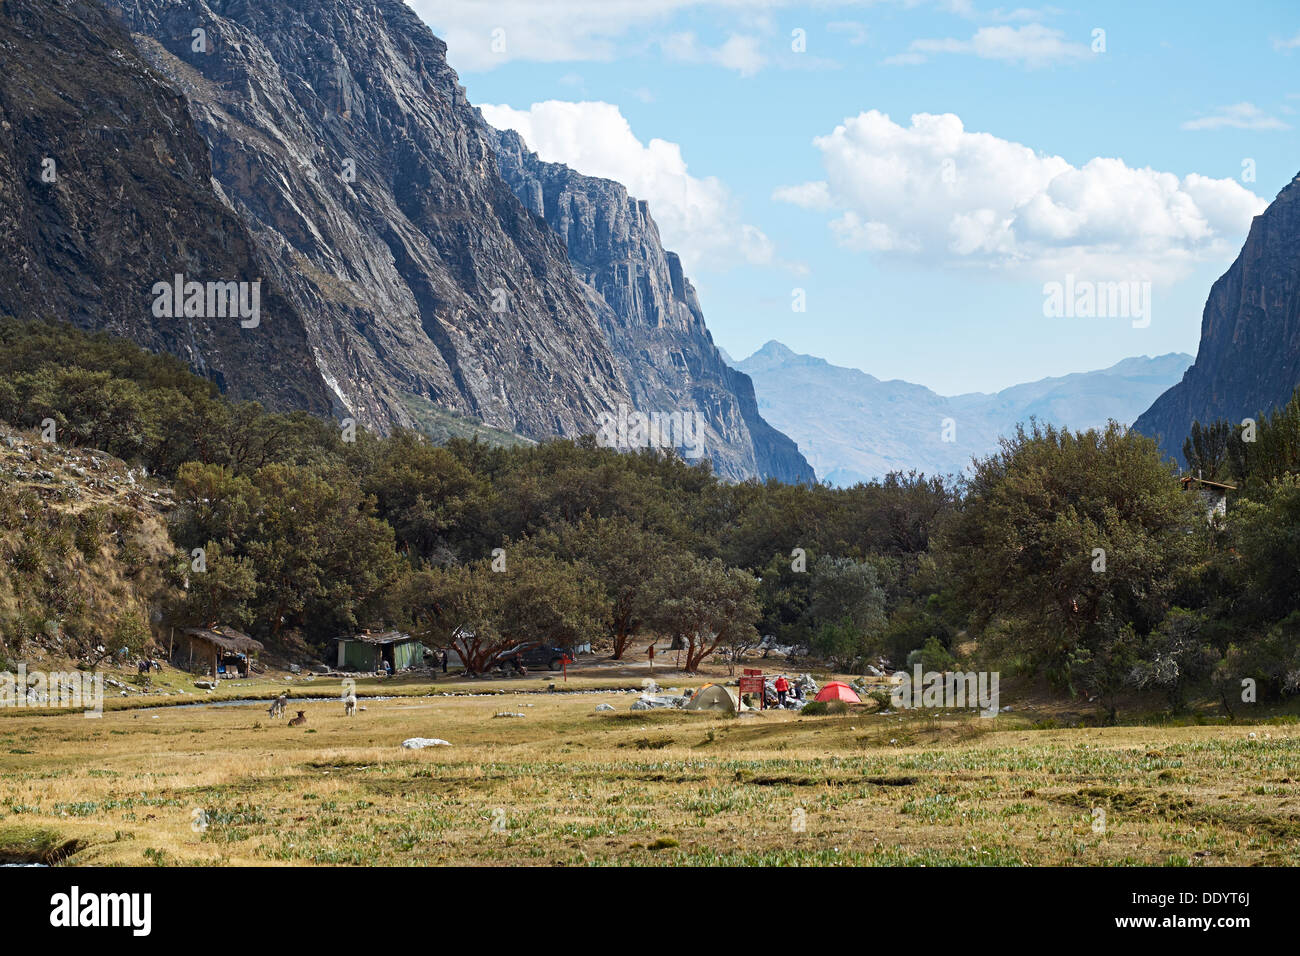 Pisco valley campsite in the Huascarán National Park, Peruvian Andes. - Stock Image